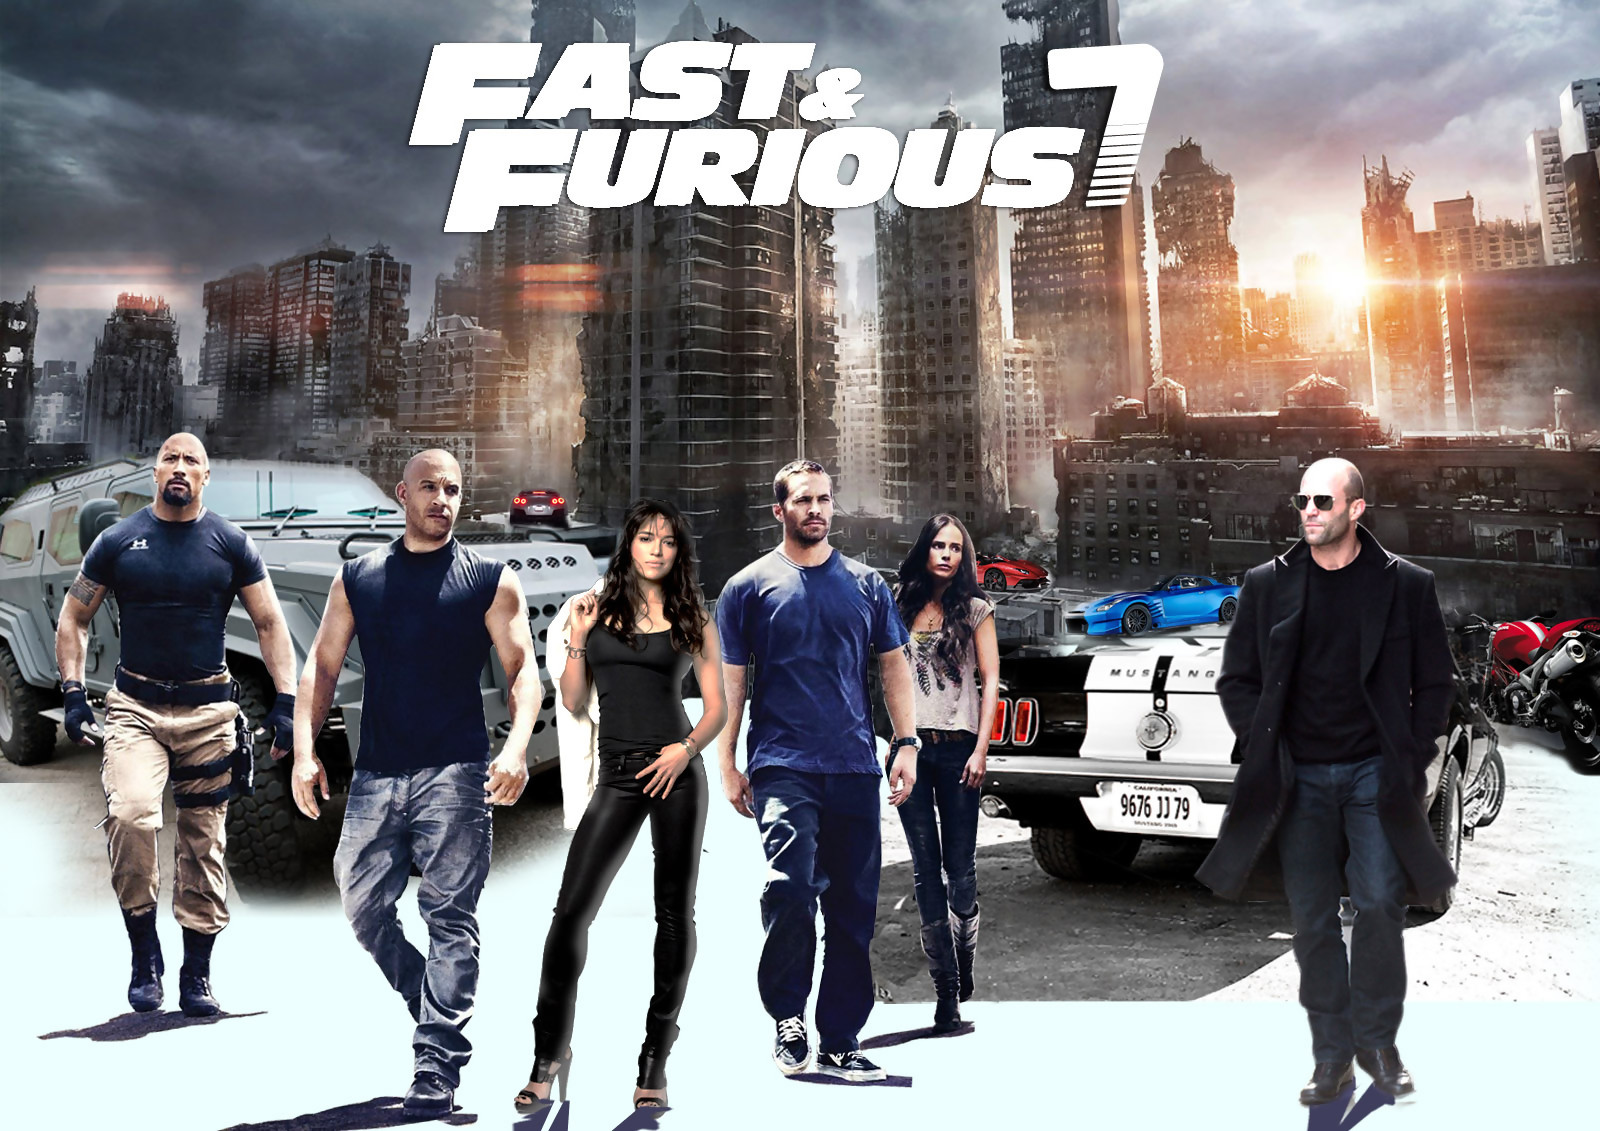 Fast and furious 7 photo 5332f87cb1d69